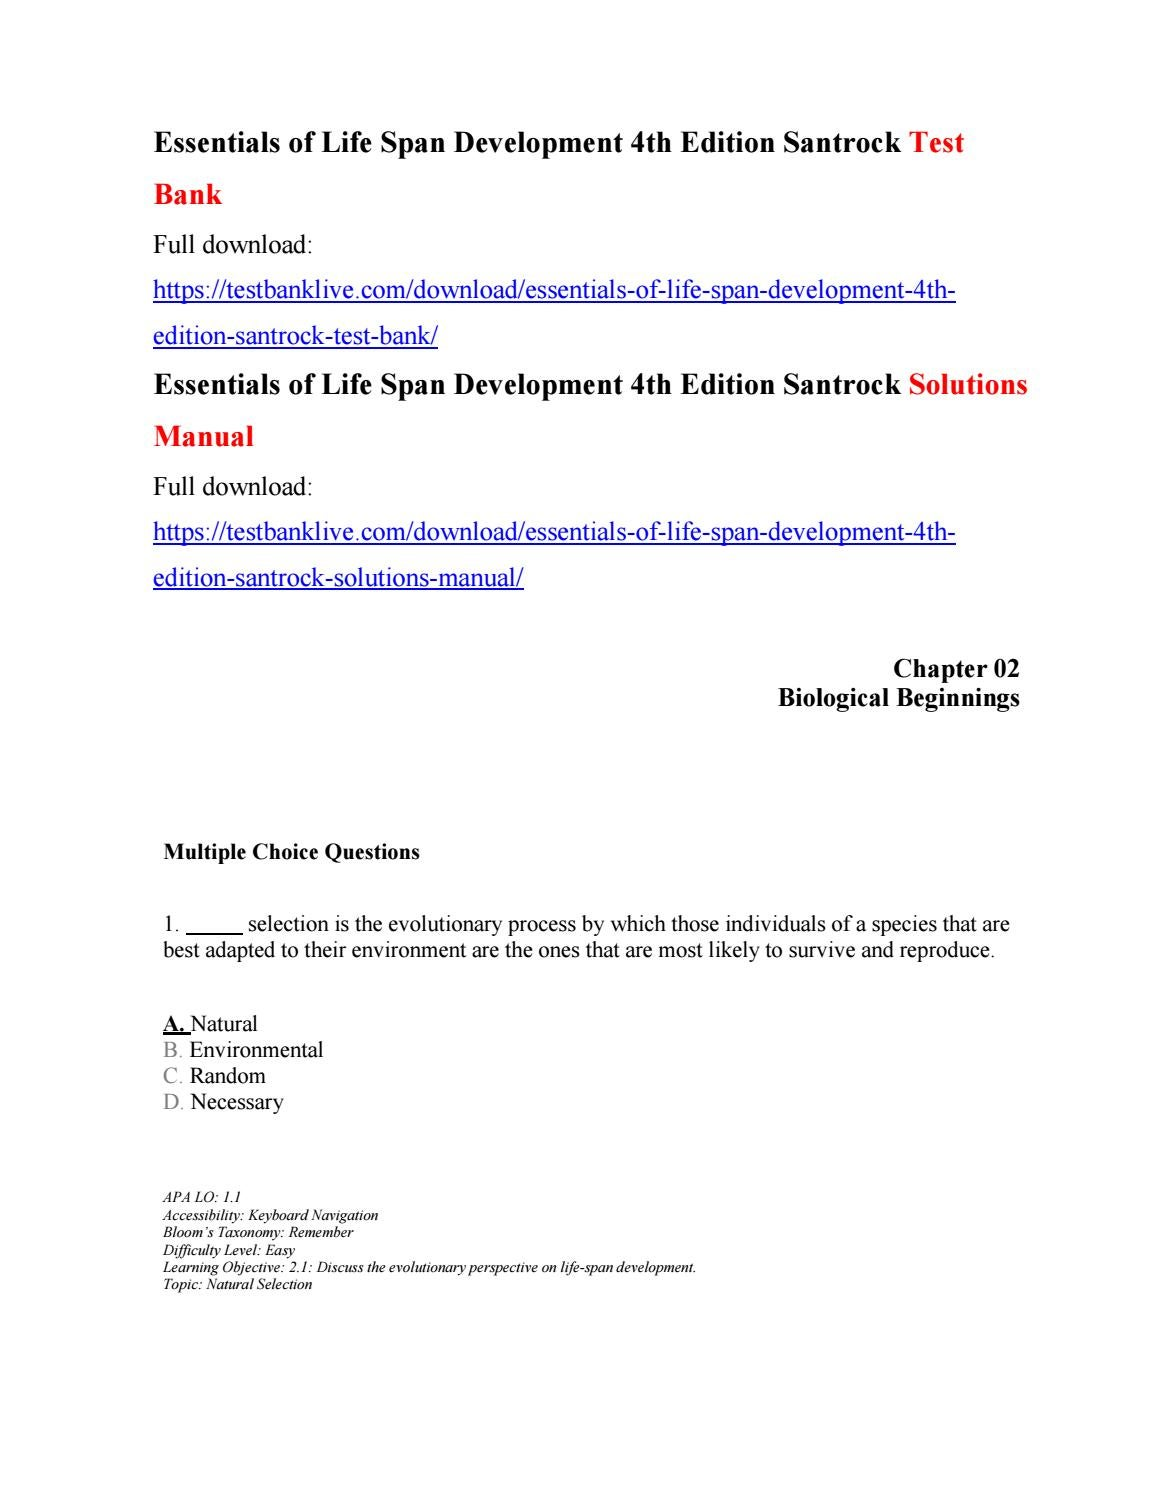 How to get essentials of life span development 4th edition.